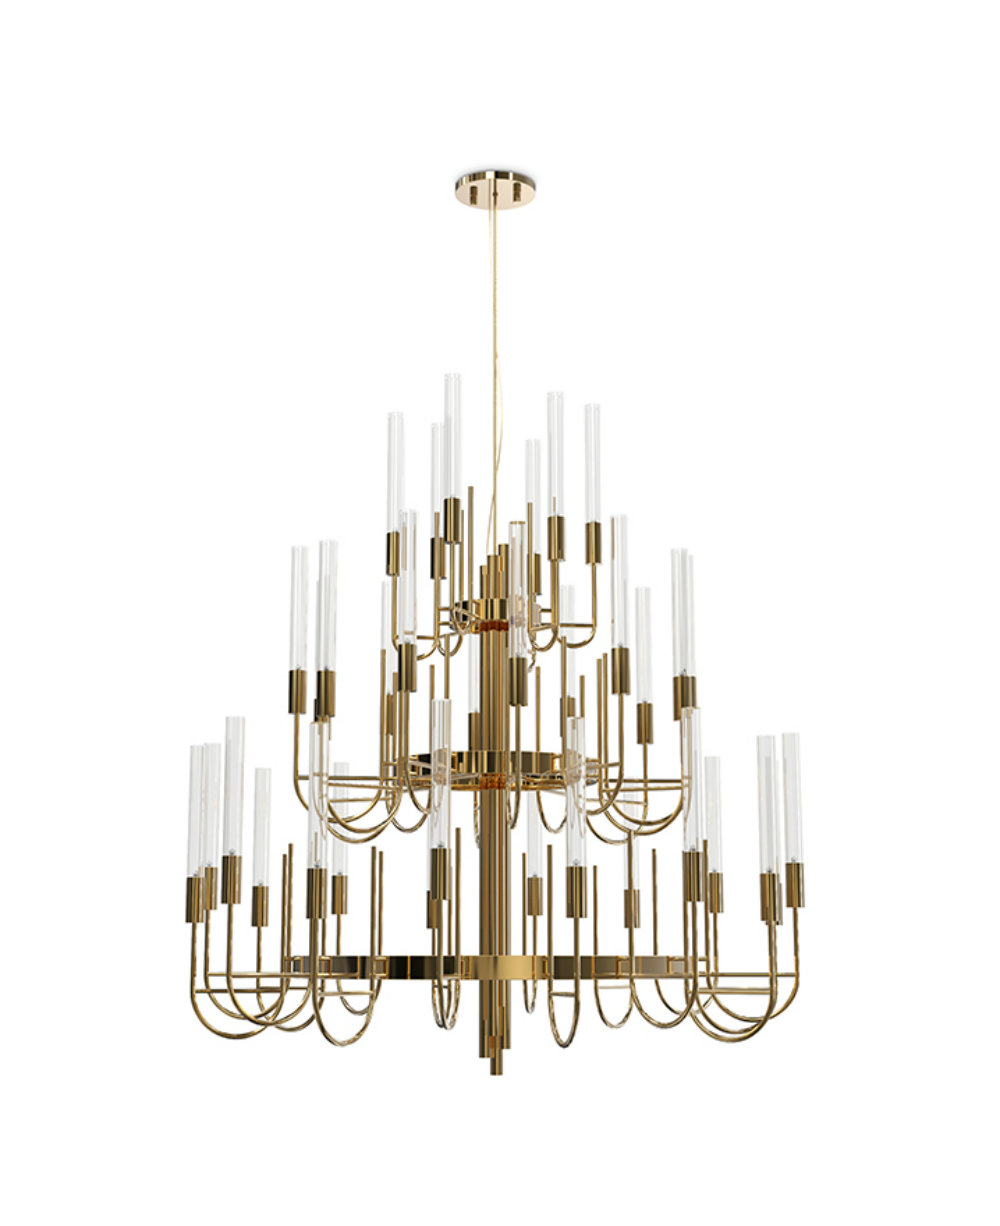 Lighting Inspiration: Meet The Gala Collection